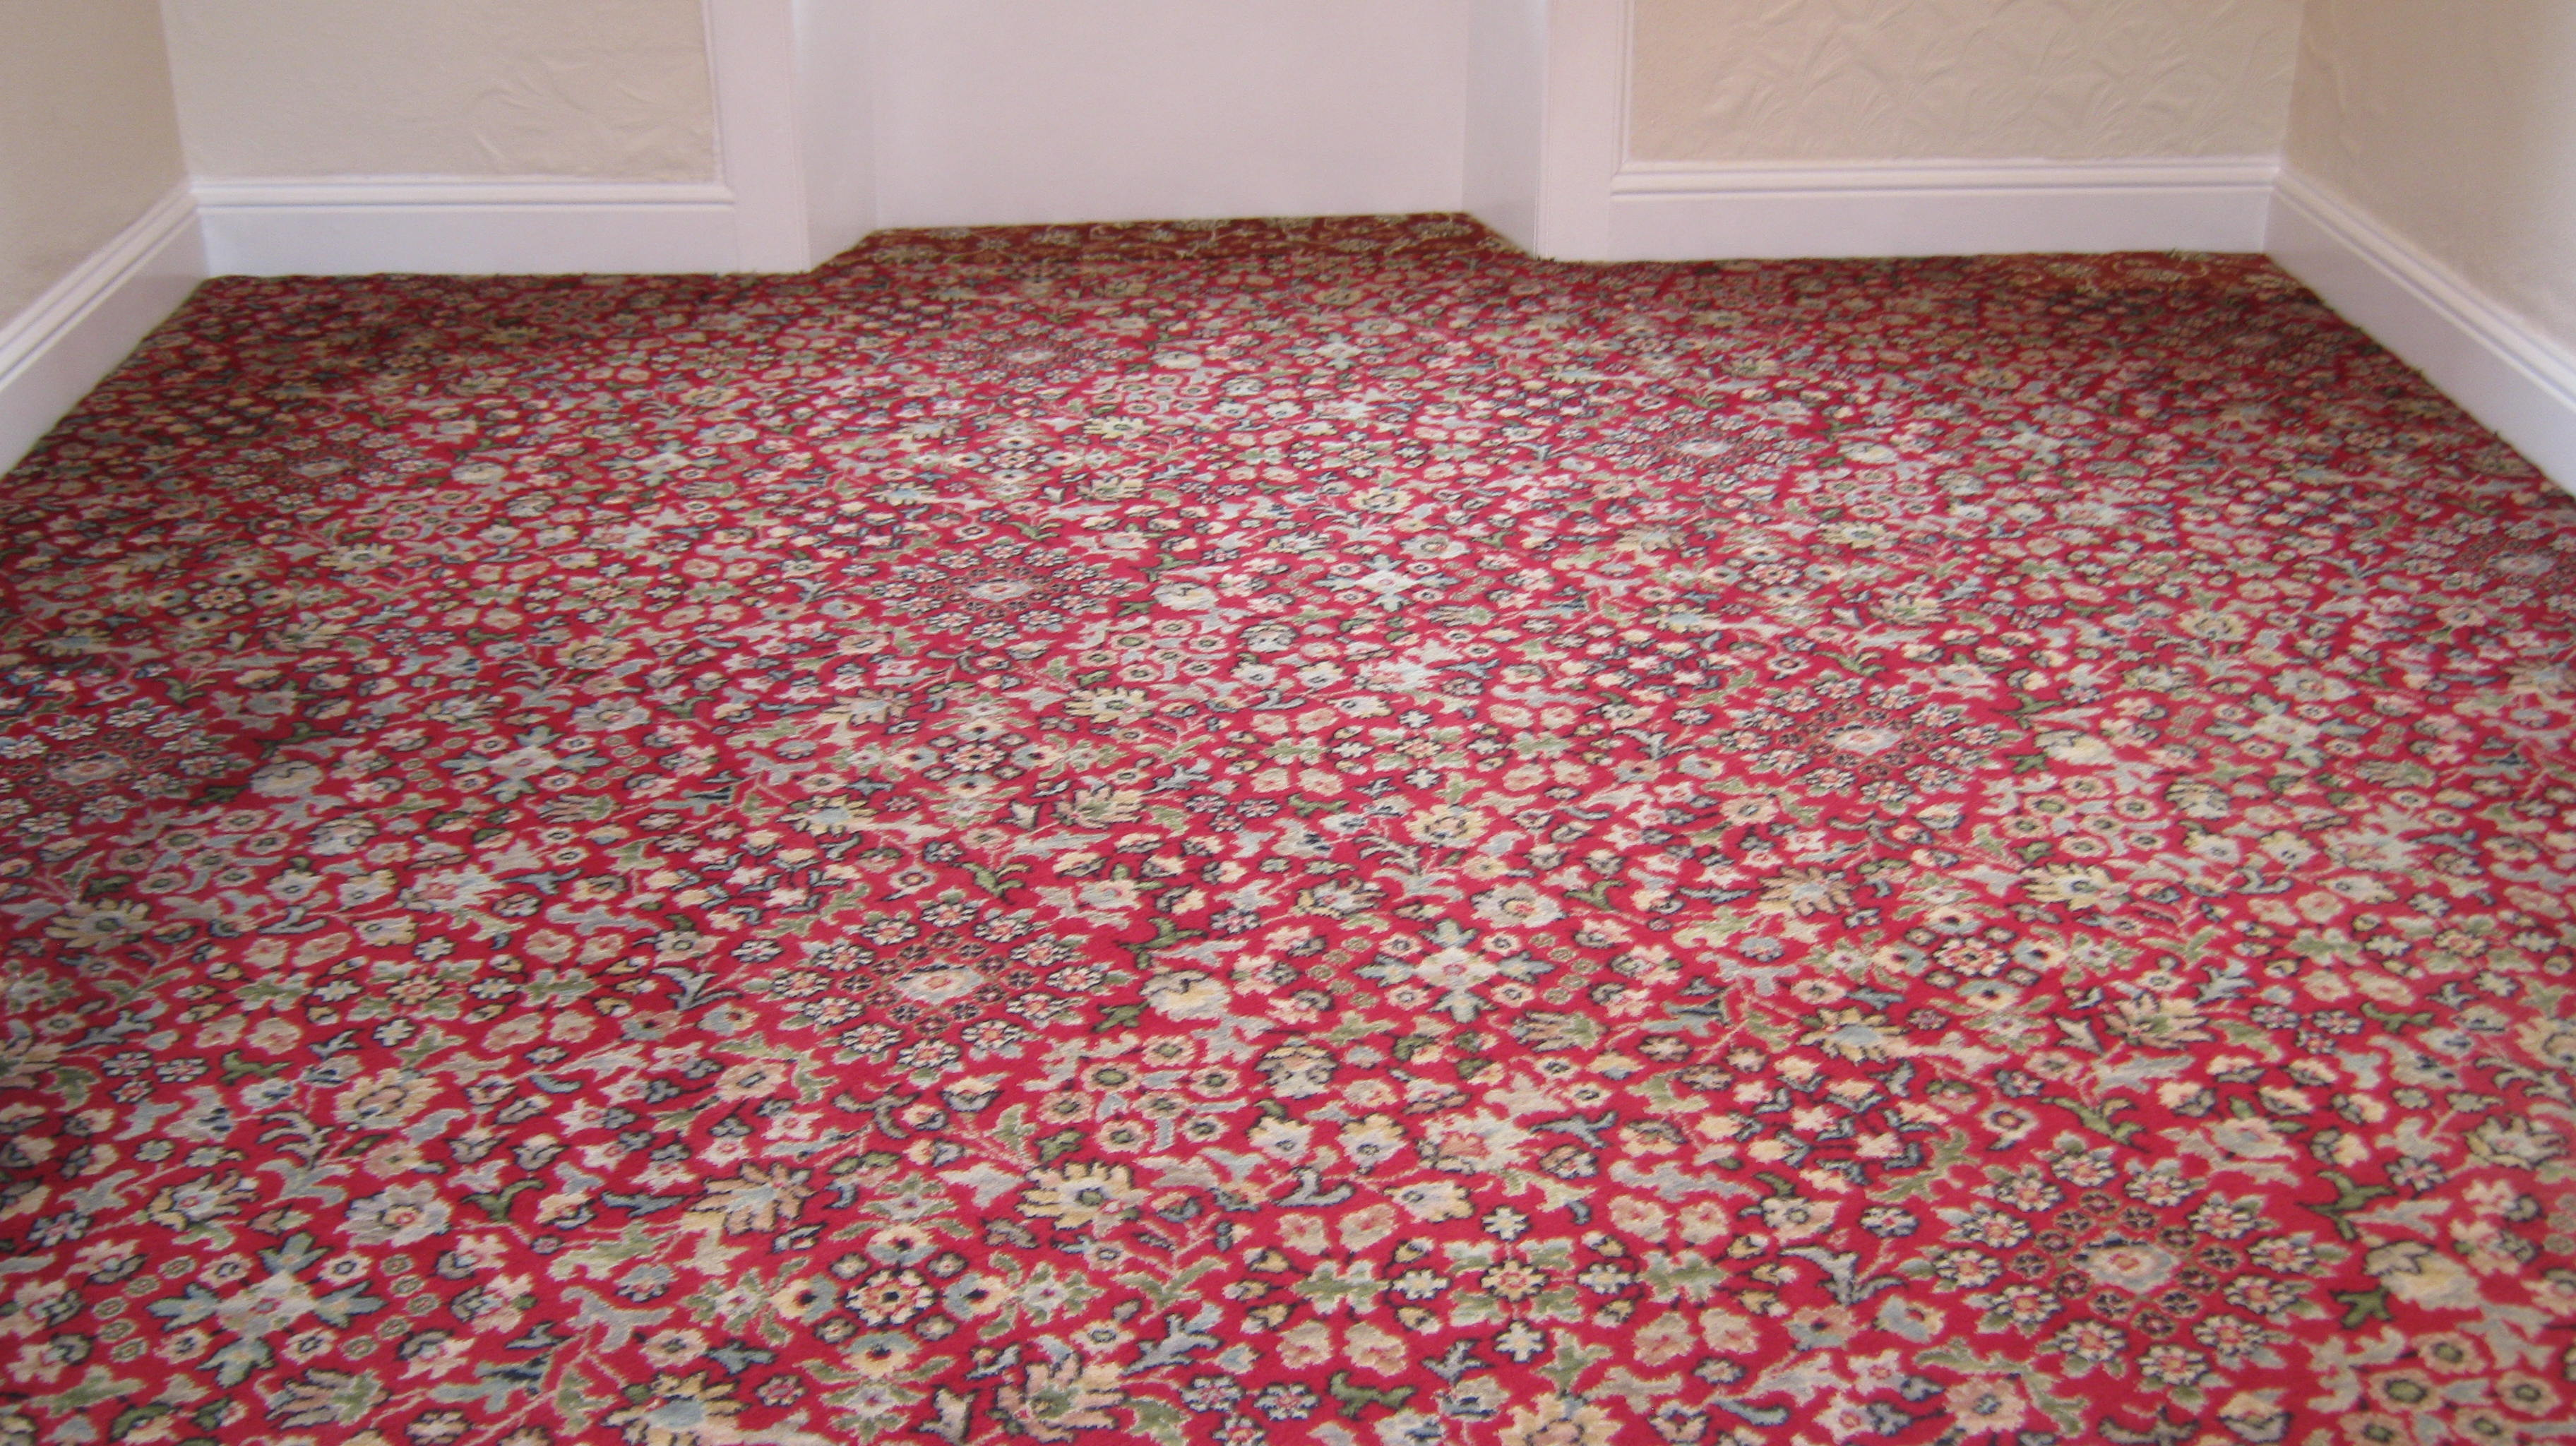 Firth Carpets - Axminster